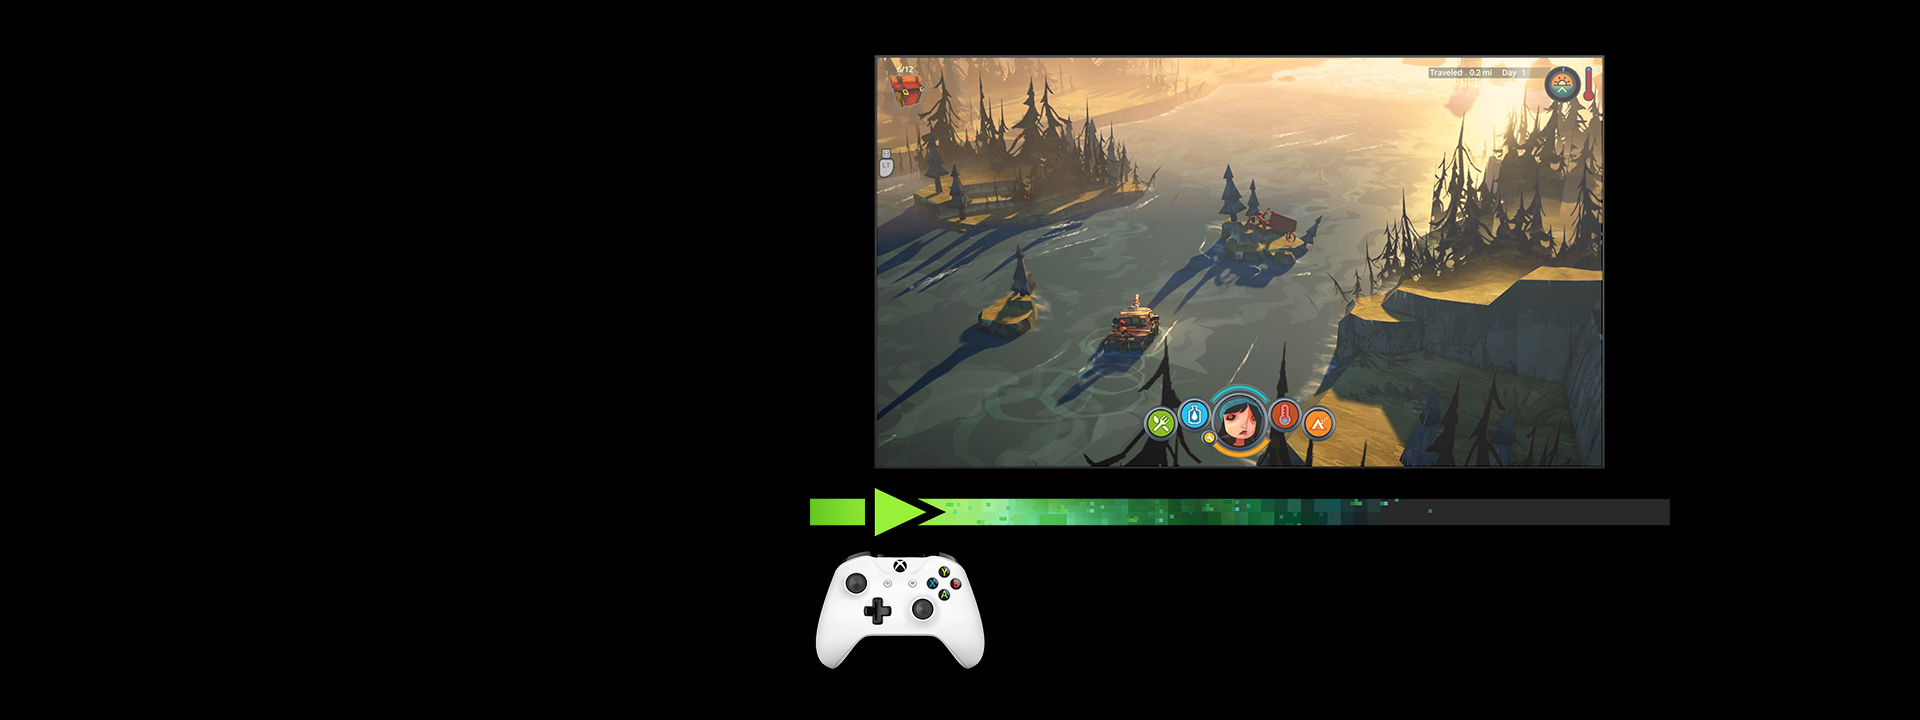 "Screenshot of the game ""The Flame in the Flood"" inside a TV screen with a white Xbox controller"